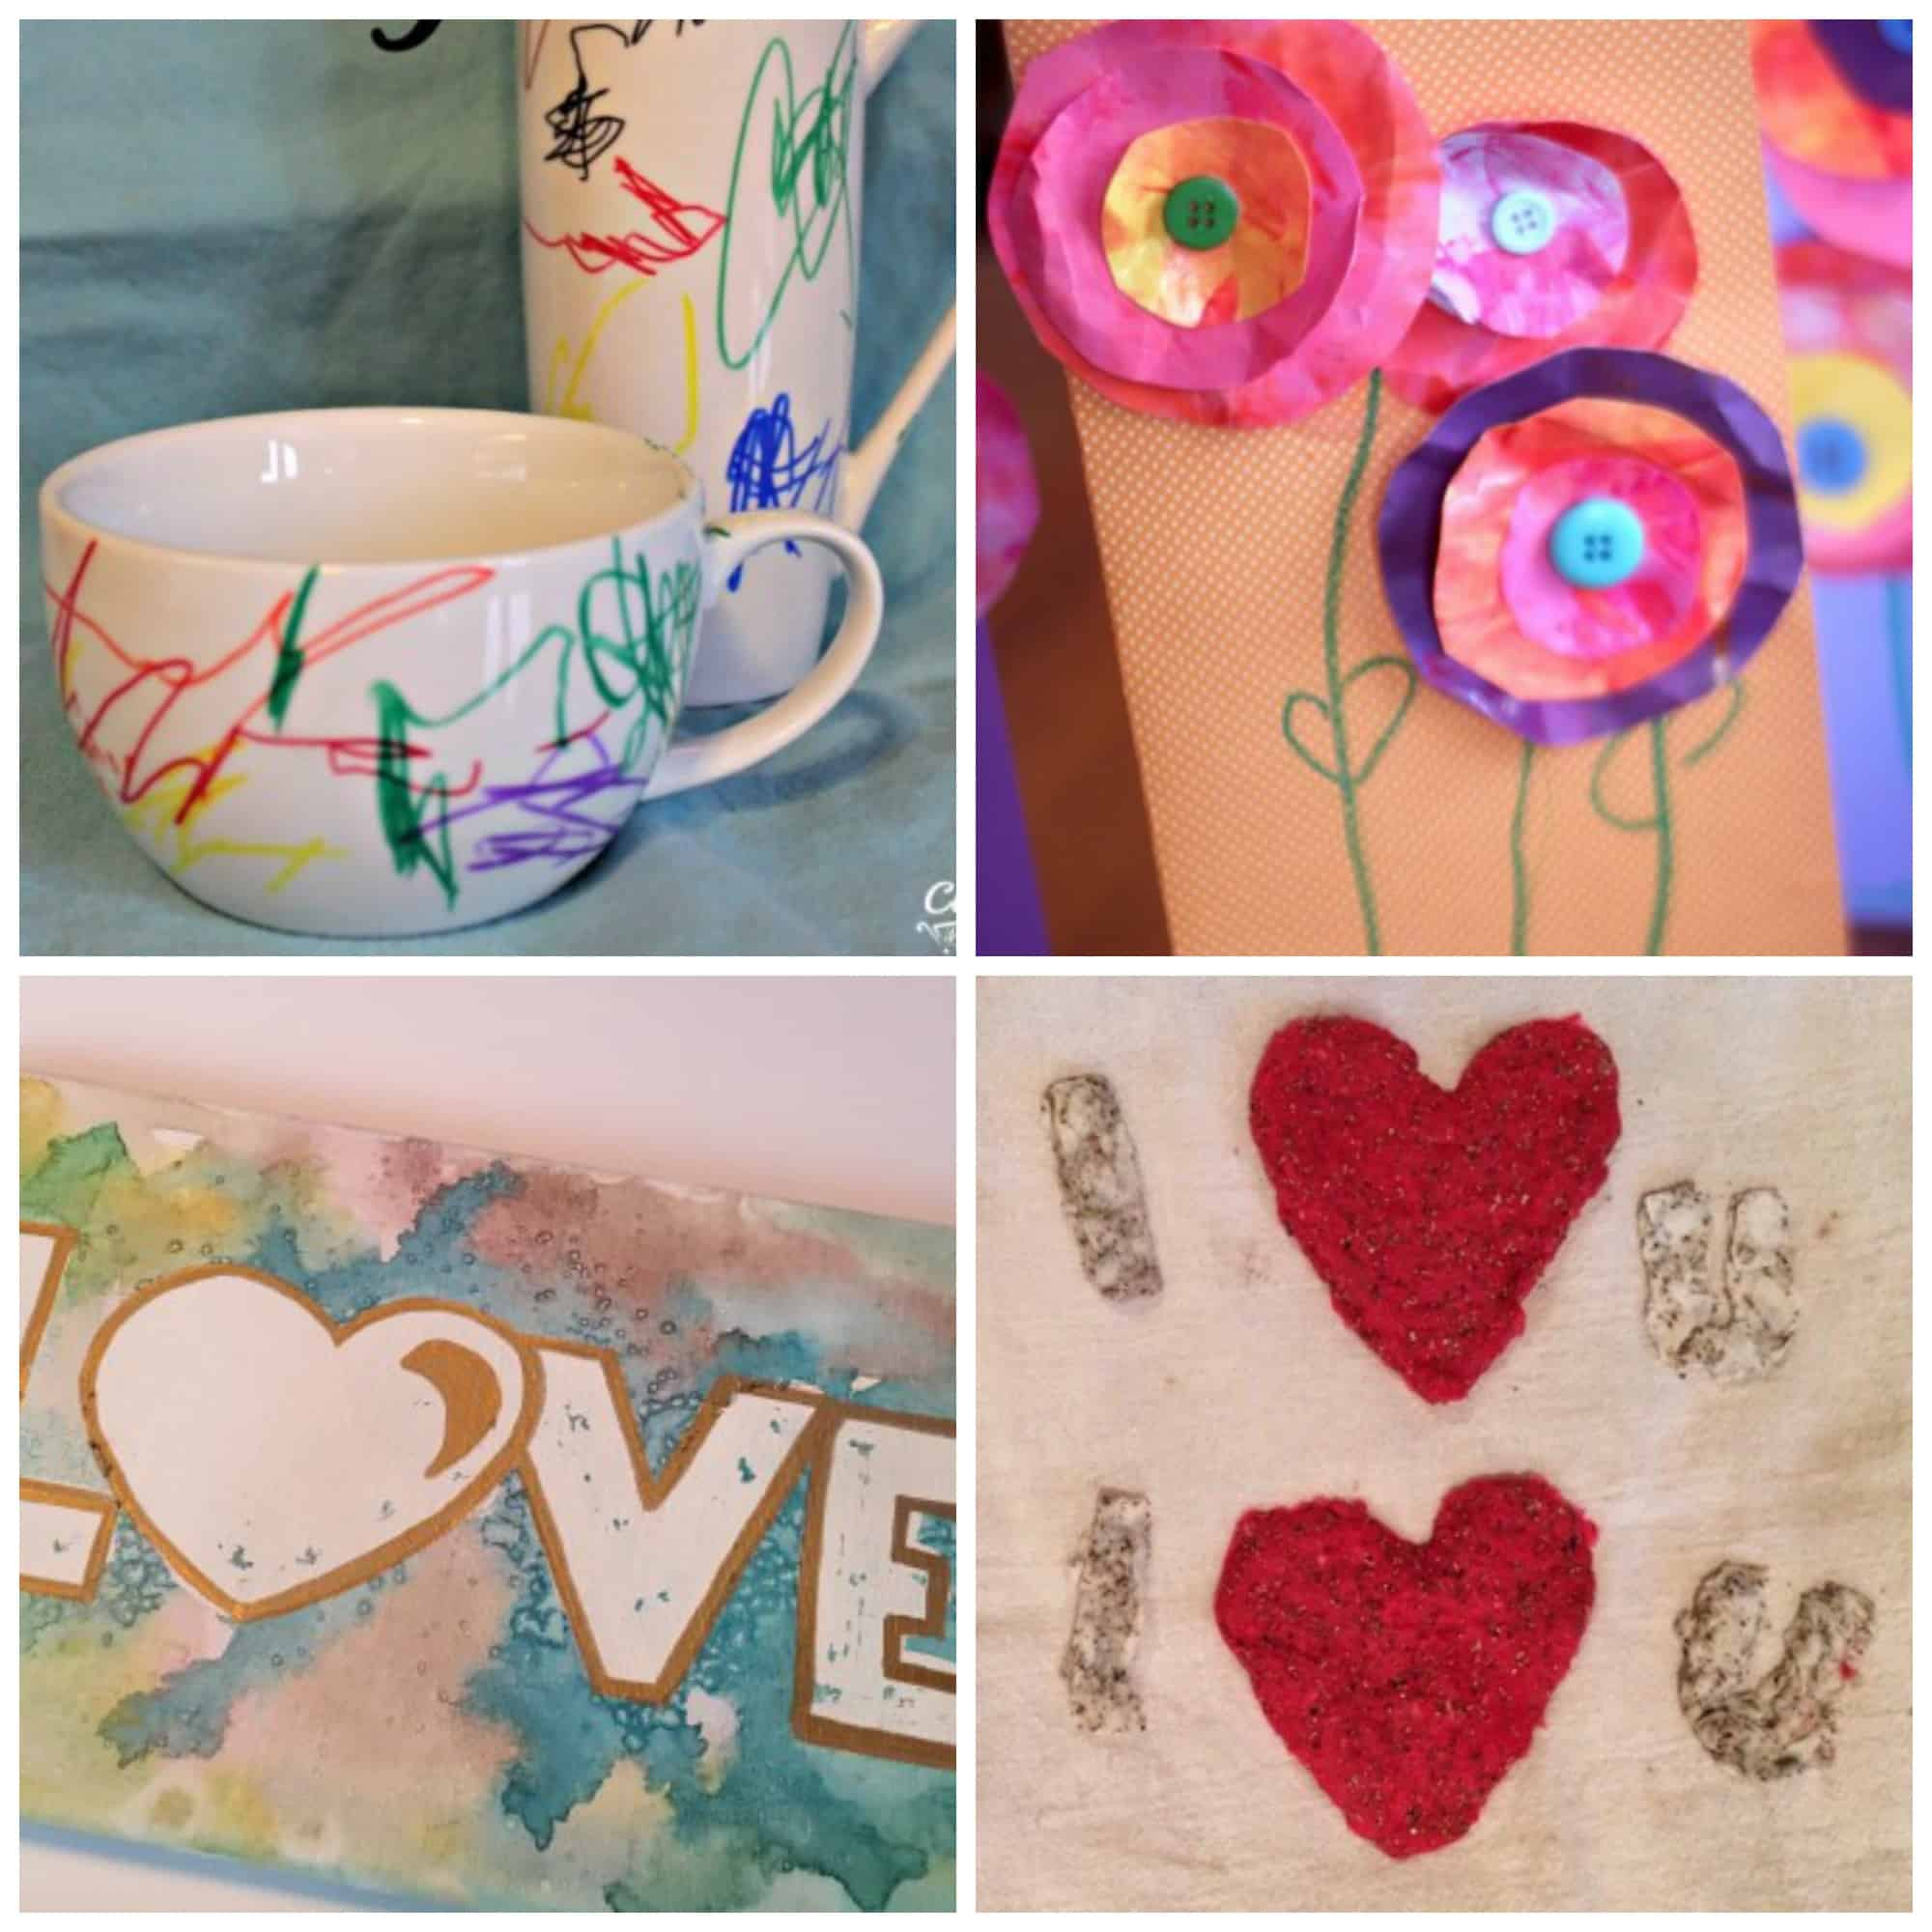 These kid-made Mother's Day gifts will WOW mom, grandma, or any other special lady in your life AND kids will take pride in making any one of these!